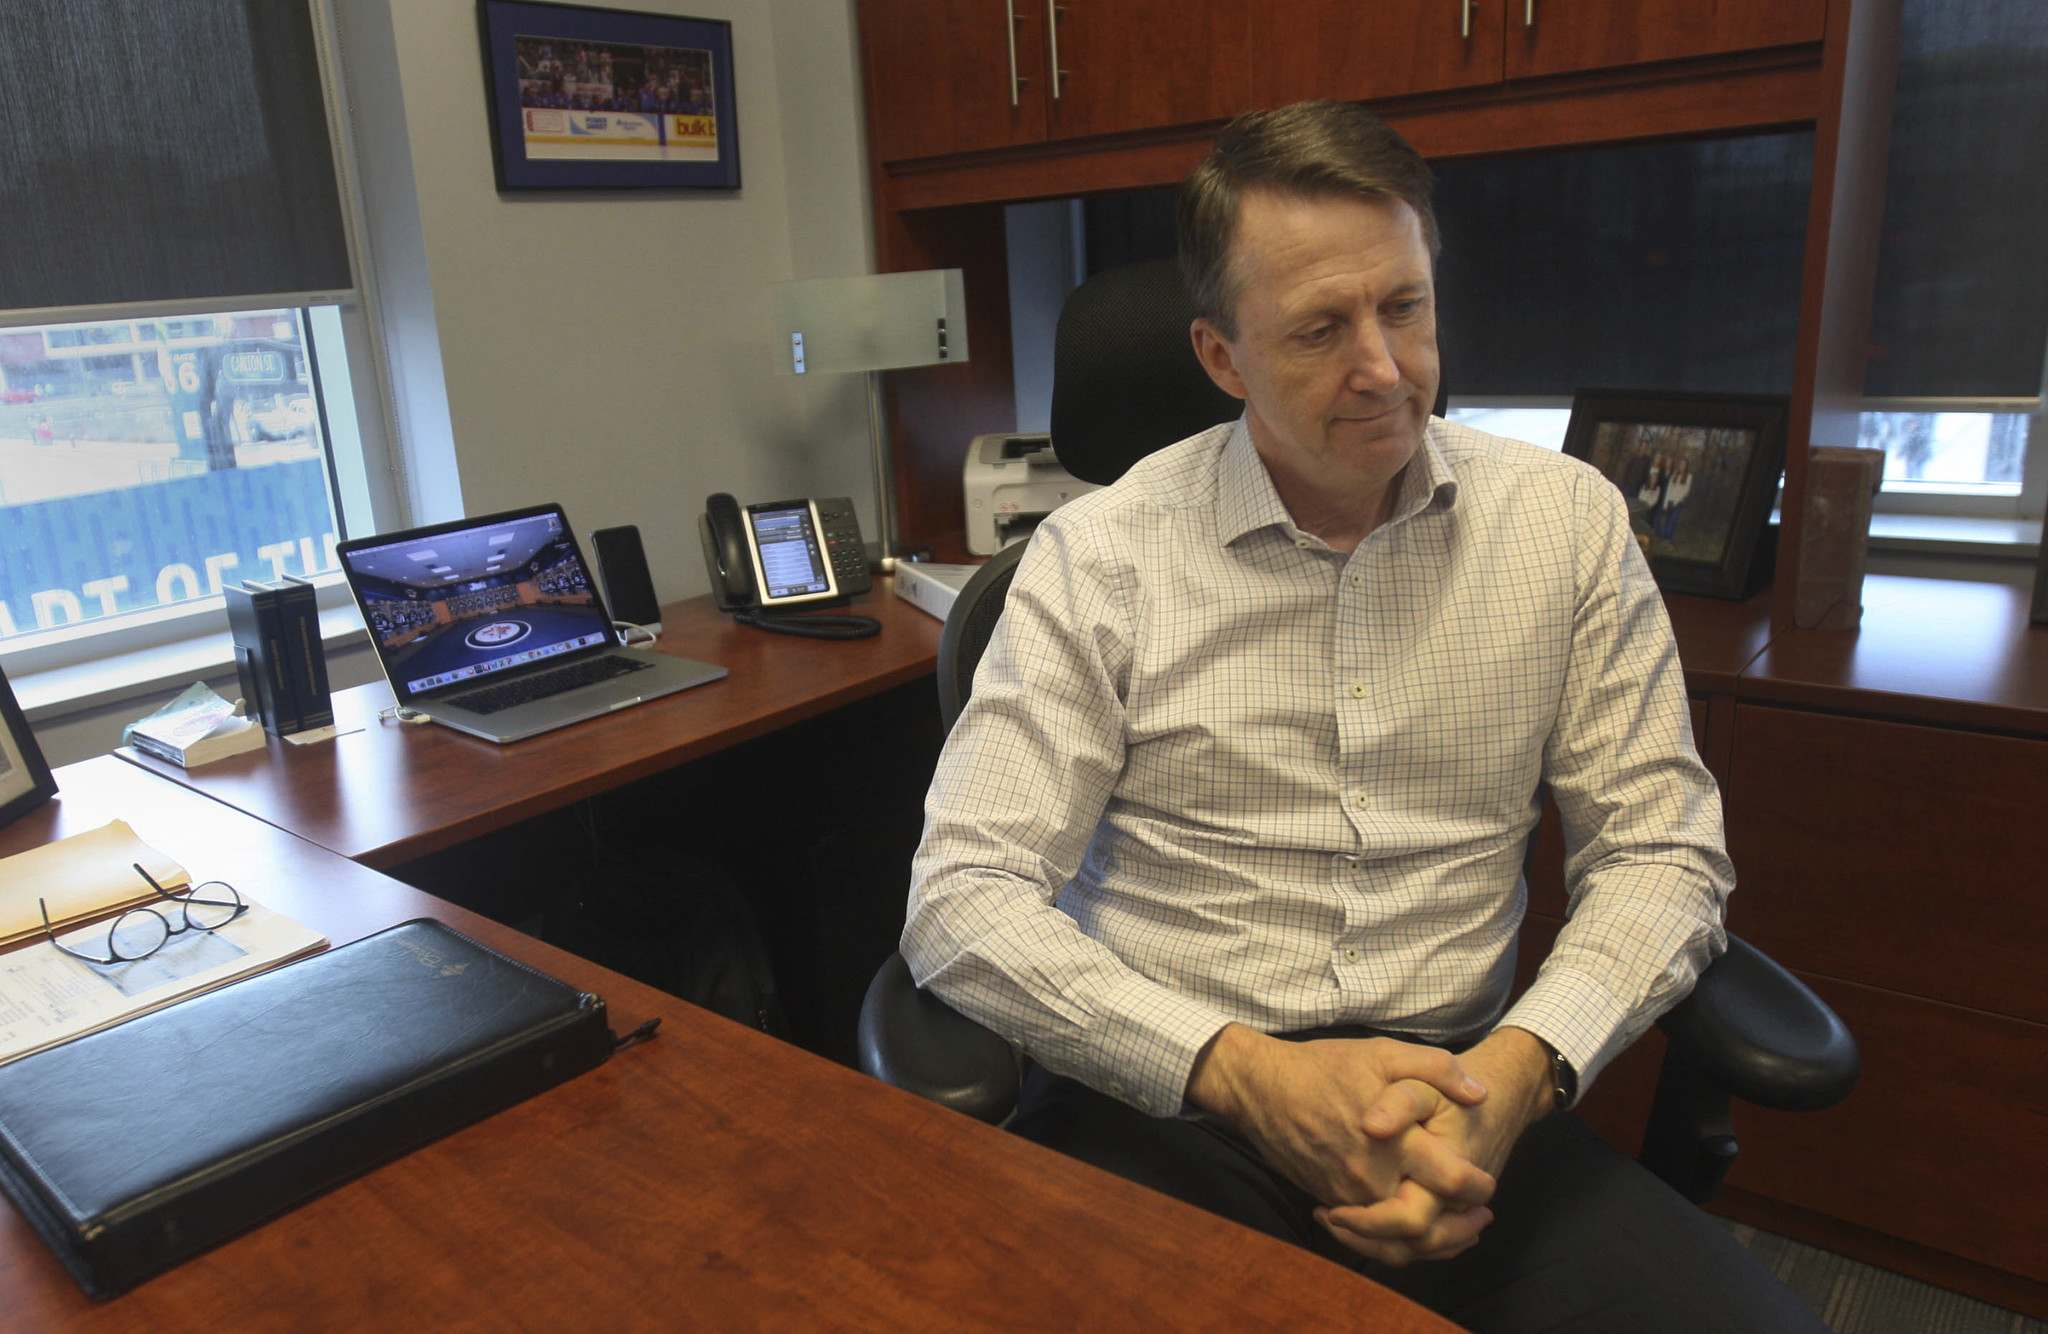 JOE BRYKSA / WINNIPEG FREE PRESS FILES</p><p>Mark Chipman, executive chairman of the board of True North Sports & Entertainment in his office at the end of the 2016 season.</p>